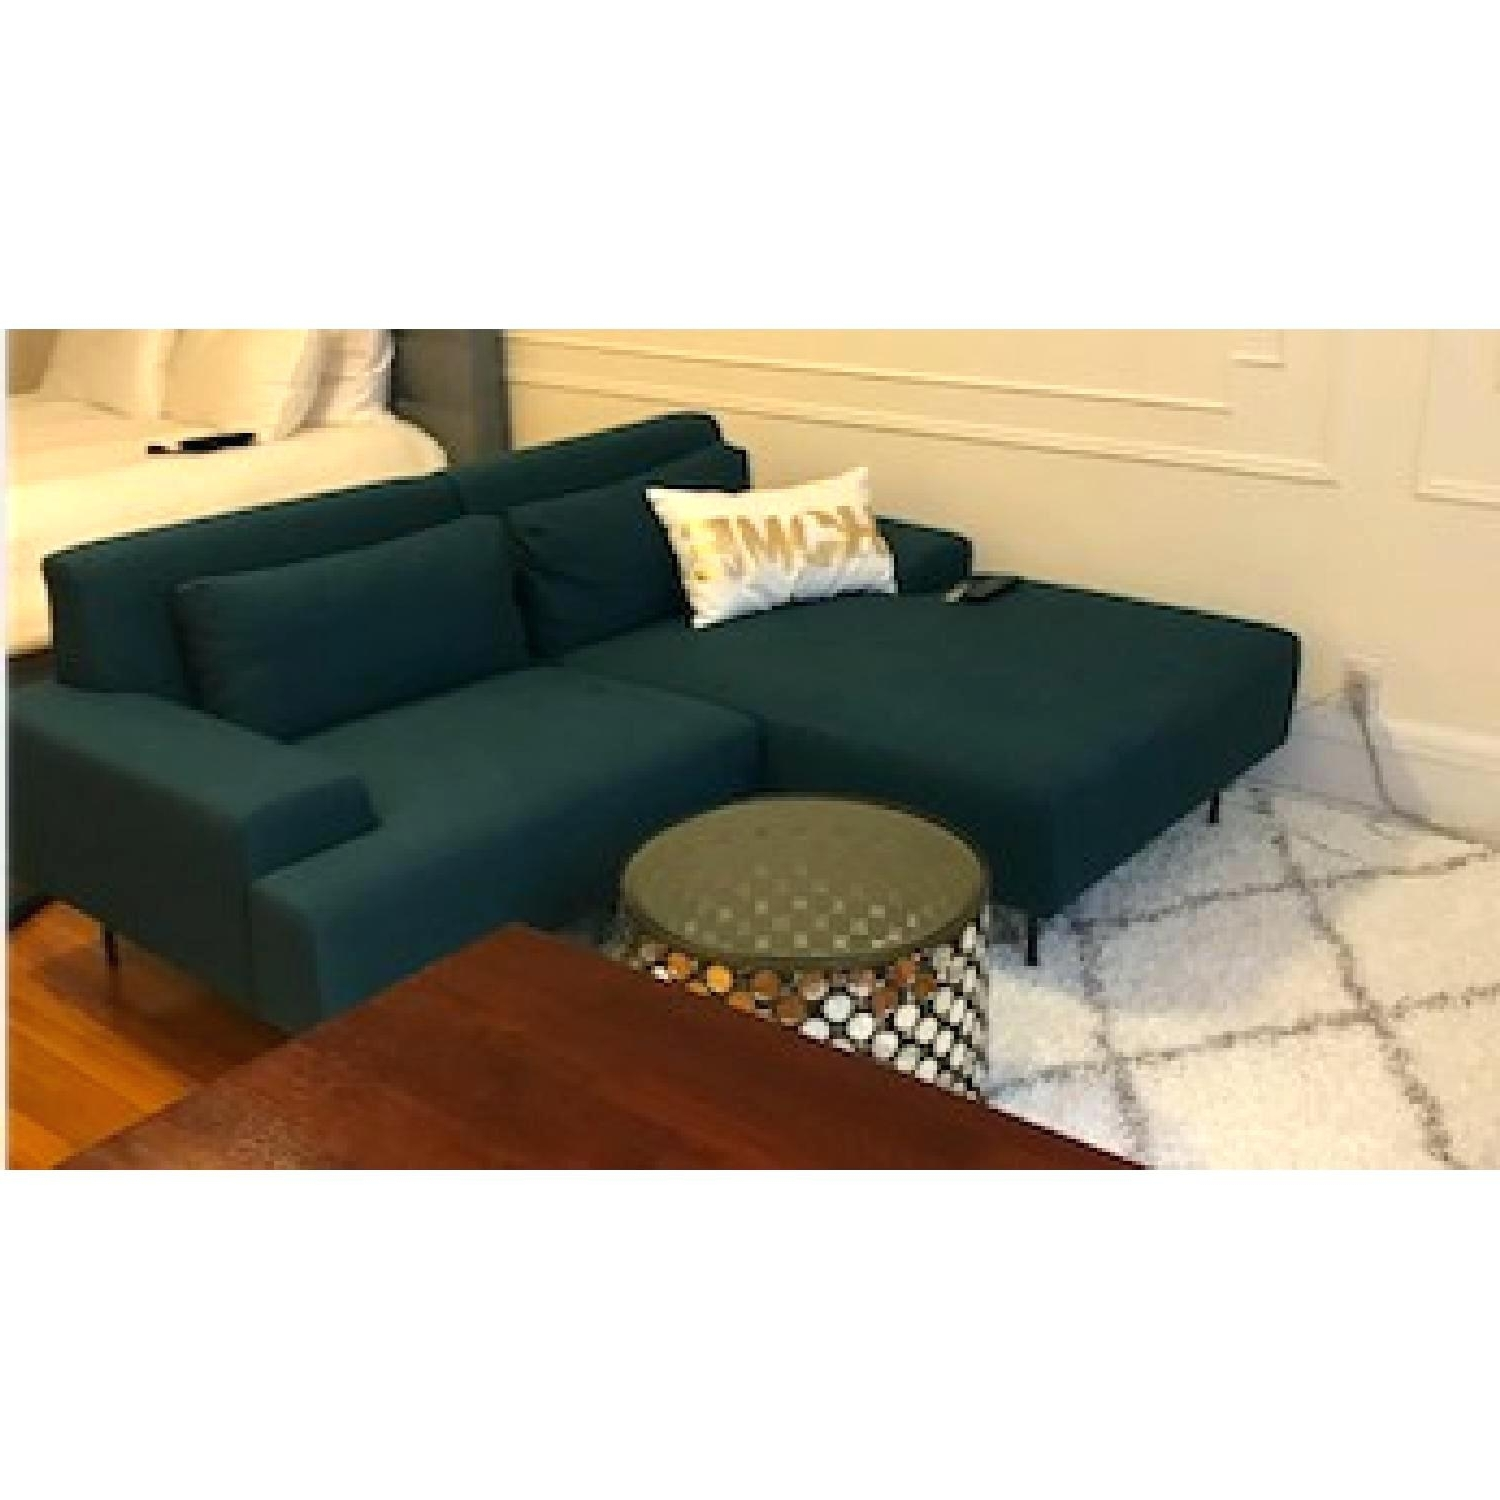 Recent 2 Piece Chaise Sectional Sofa Big Lots Sofas Bergen For Big Lots Chaises (View 12 of 15)